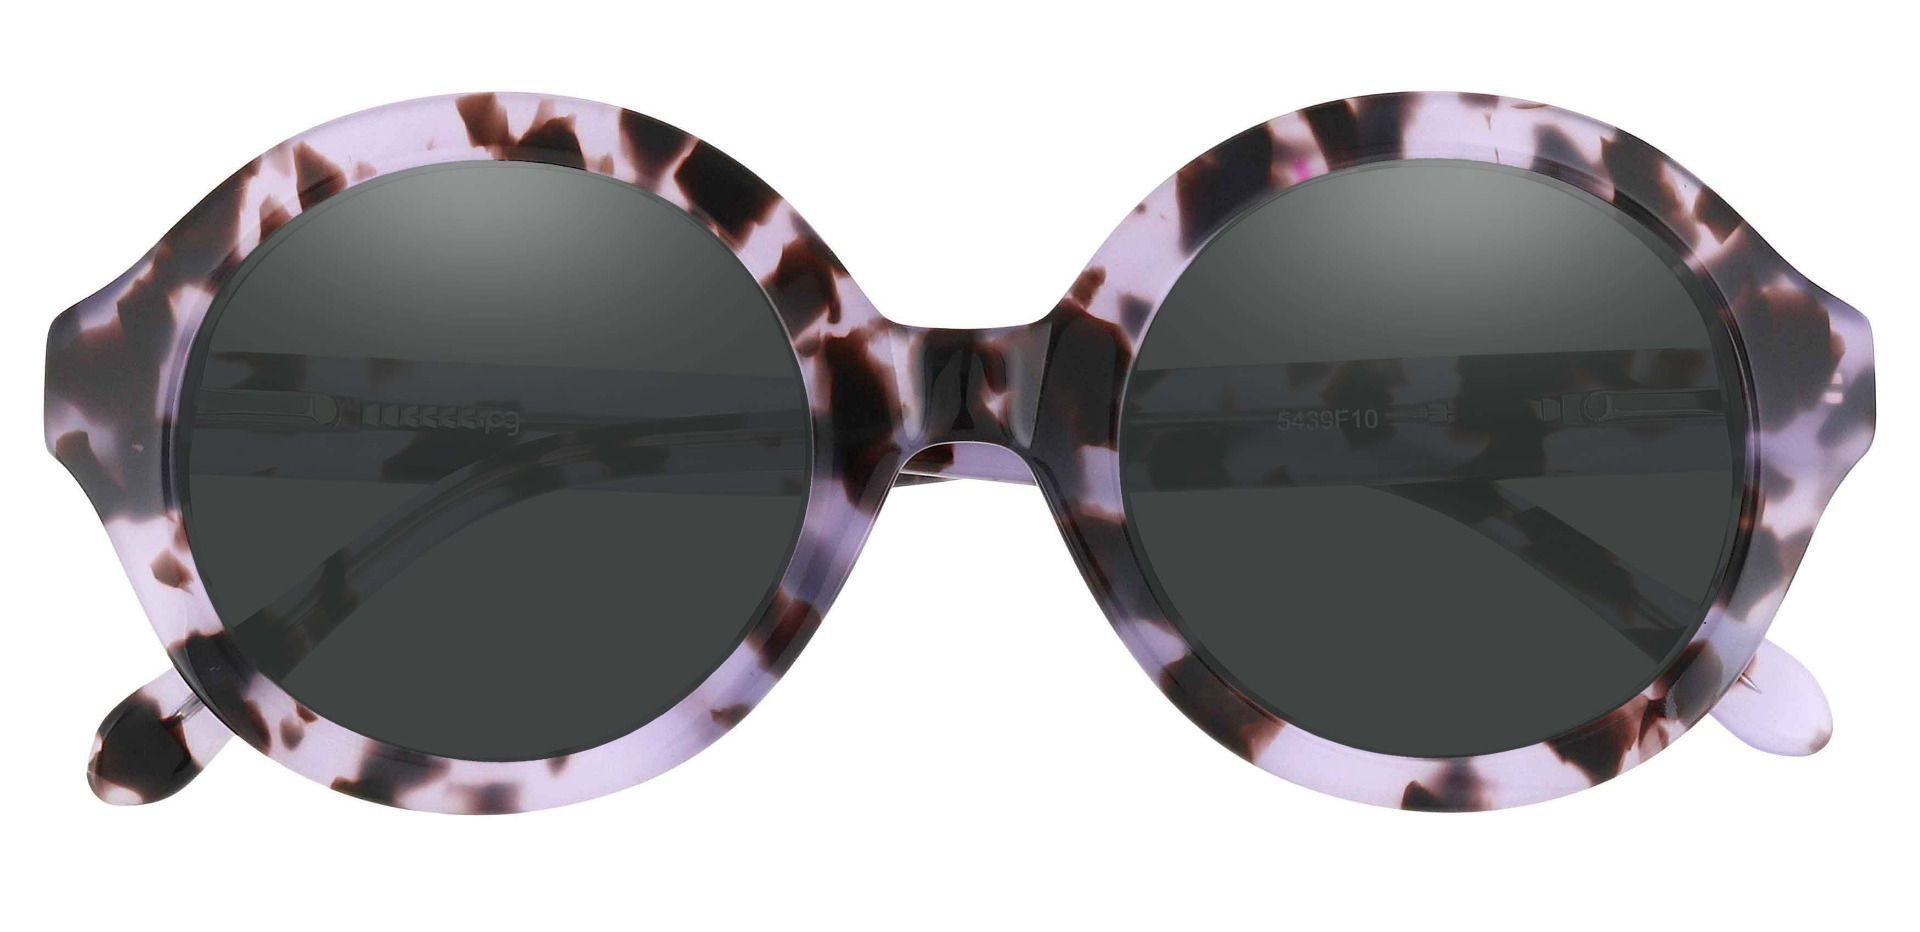 Clara Round Non-Rx Sunglasses - Floral Frame With Gray Lenses